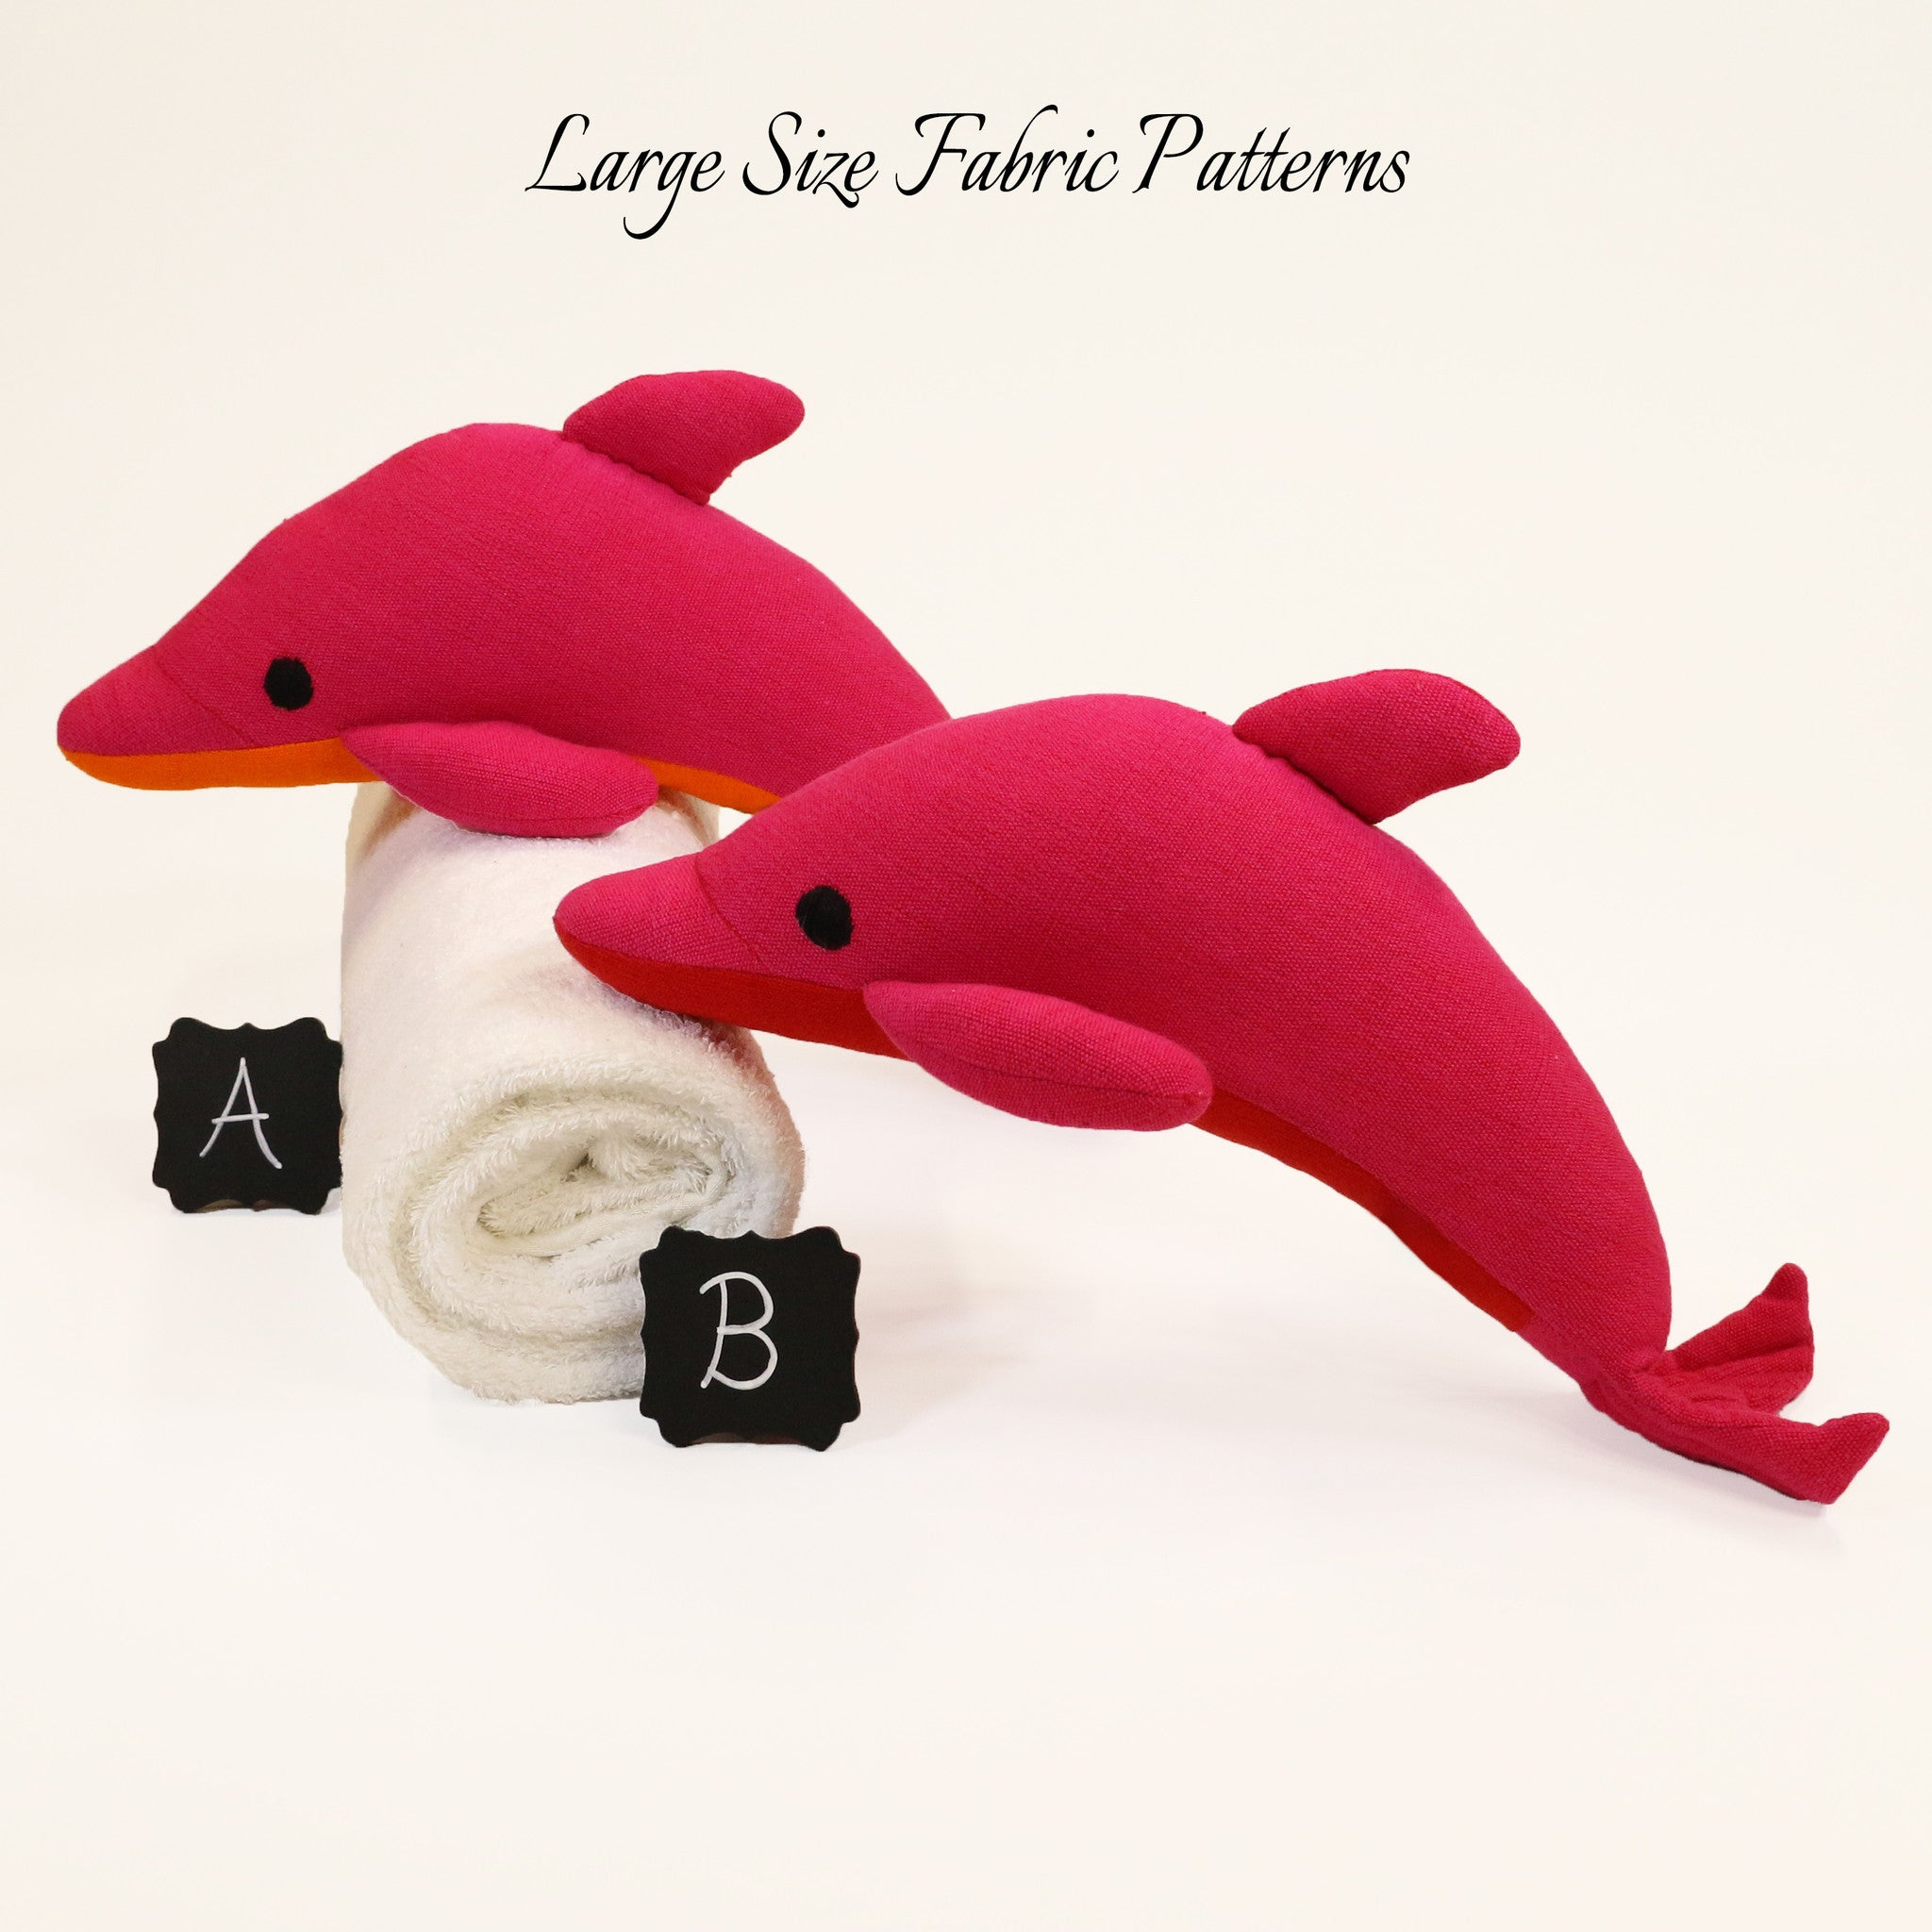 Daffy, the Dolphin – all large size fabric patterns shown